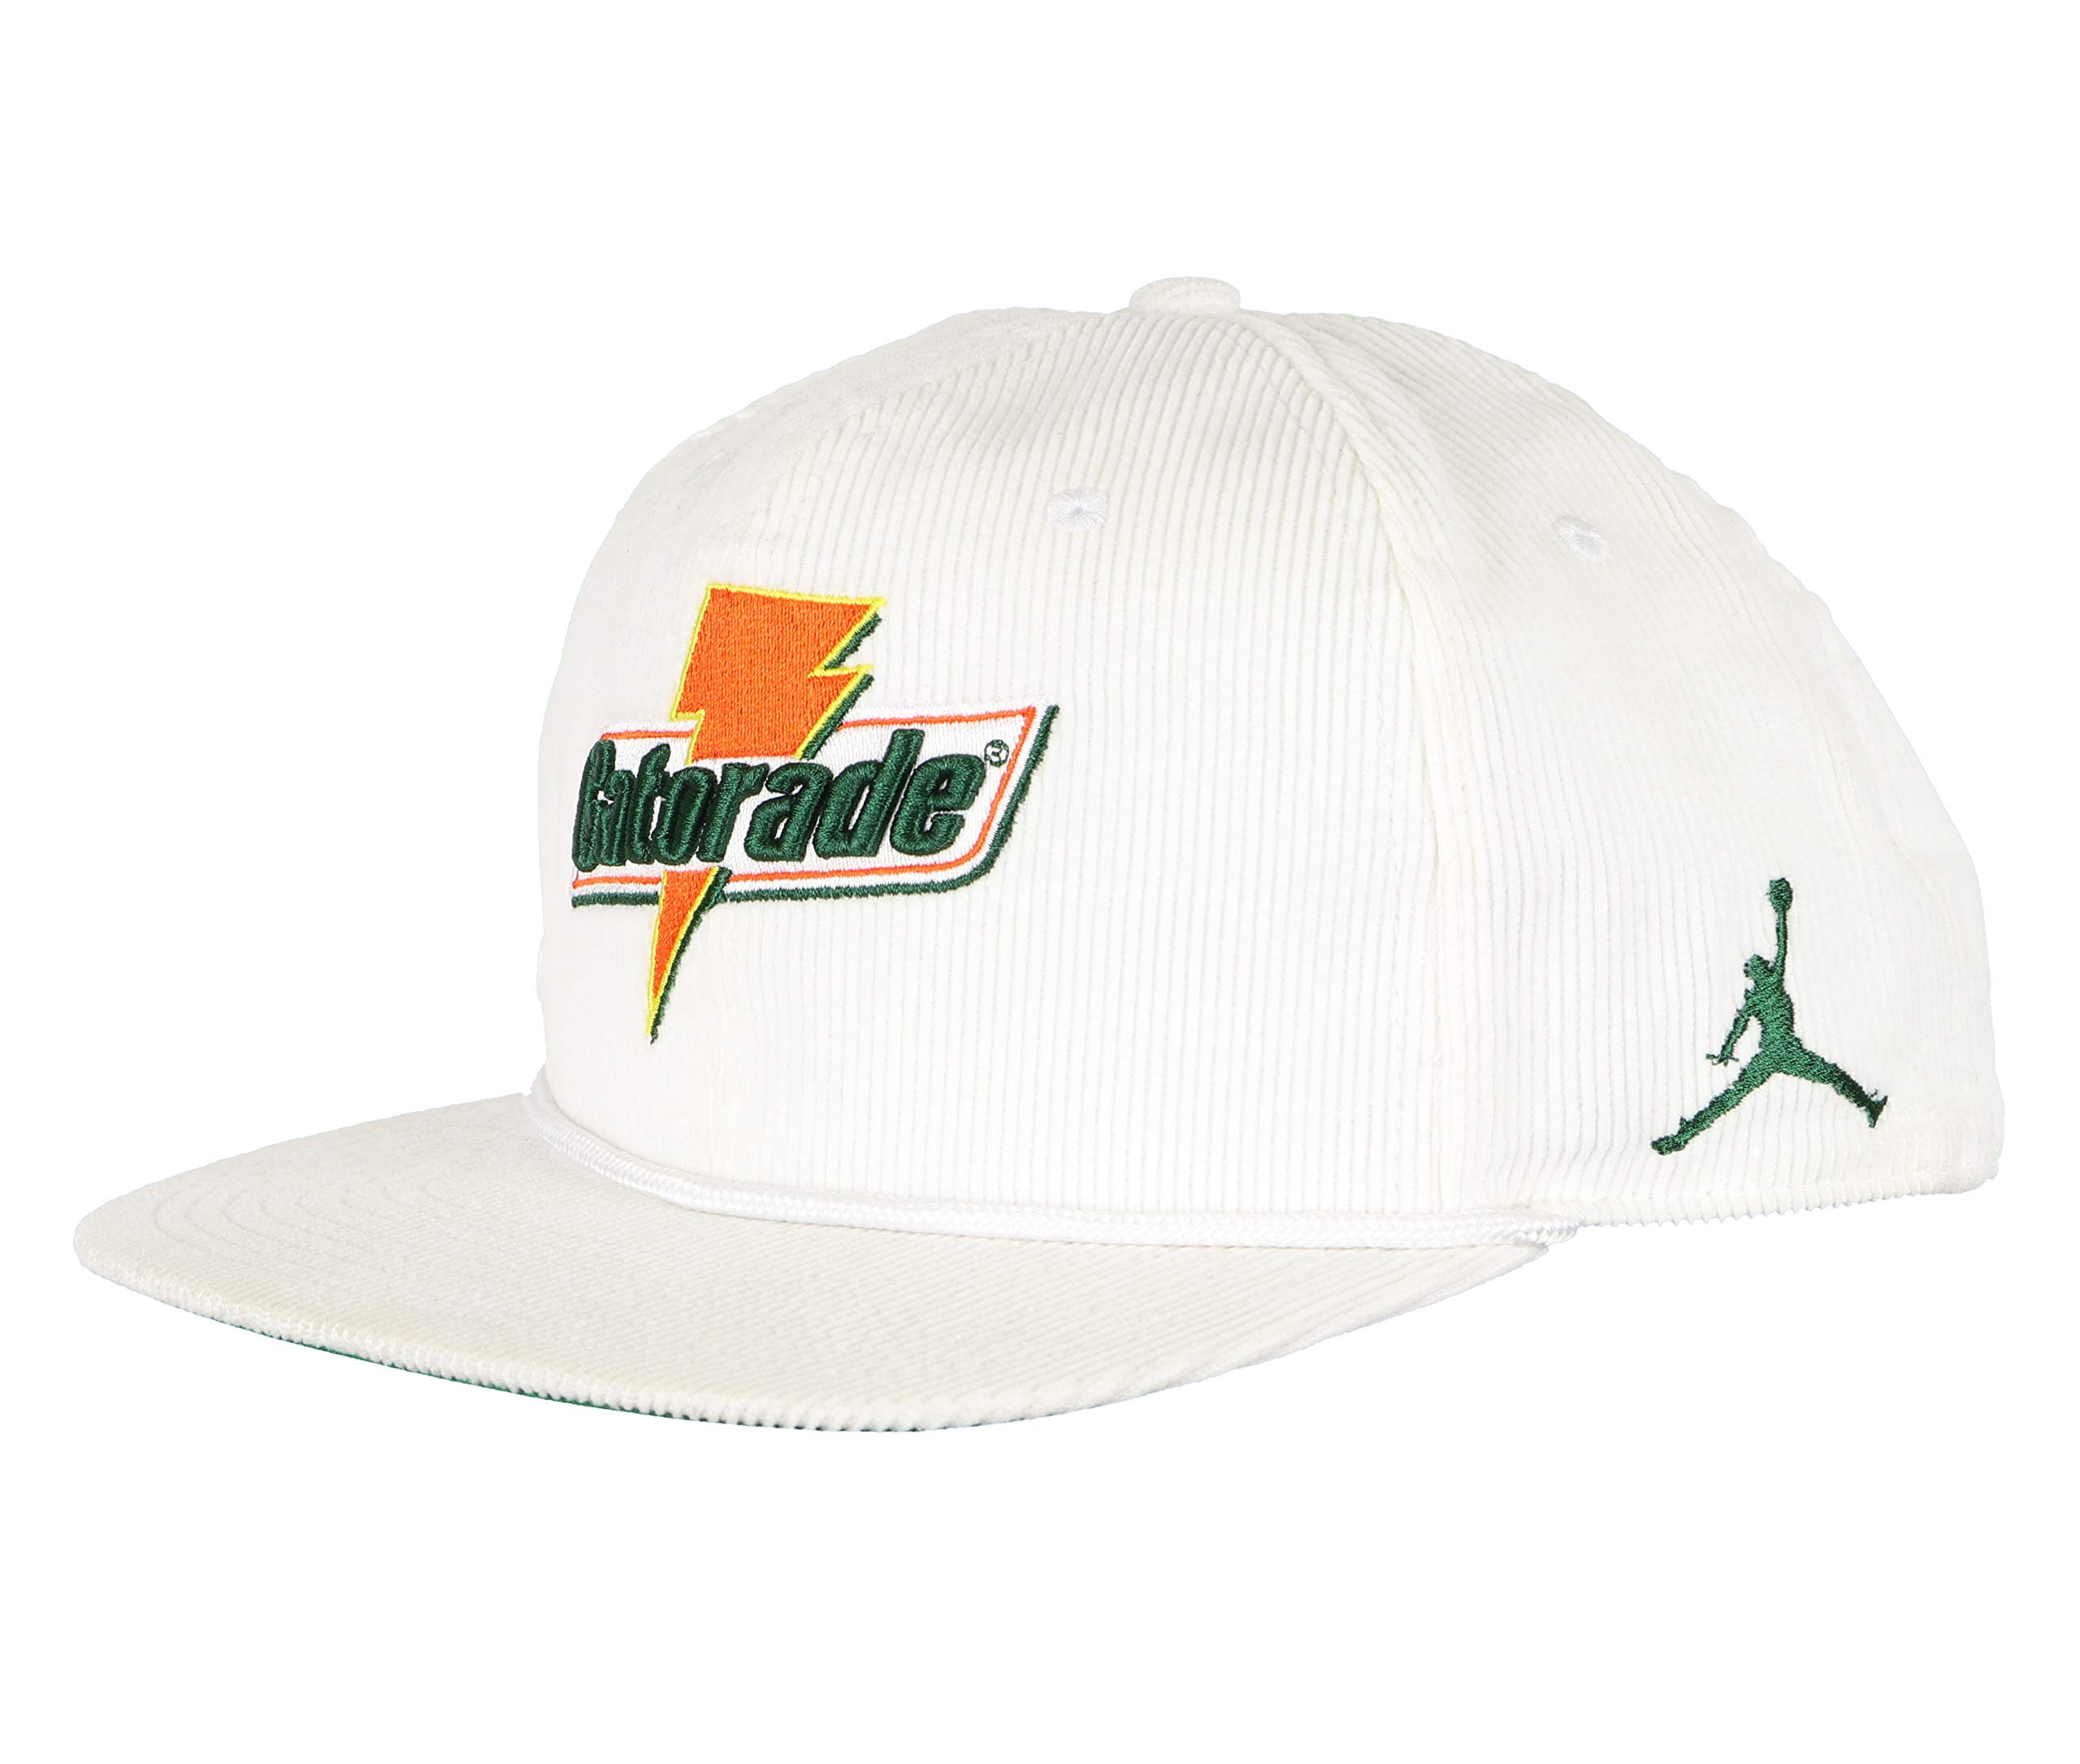 NIKE Air Jordan Pro Like Mike Baseball Cap Adult Adjustable White/Orange/Green (One Size Fits Most)